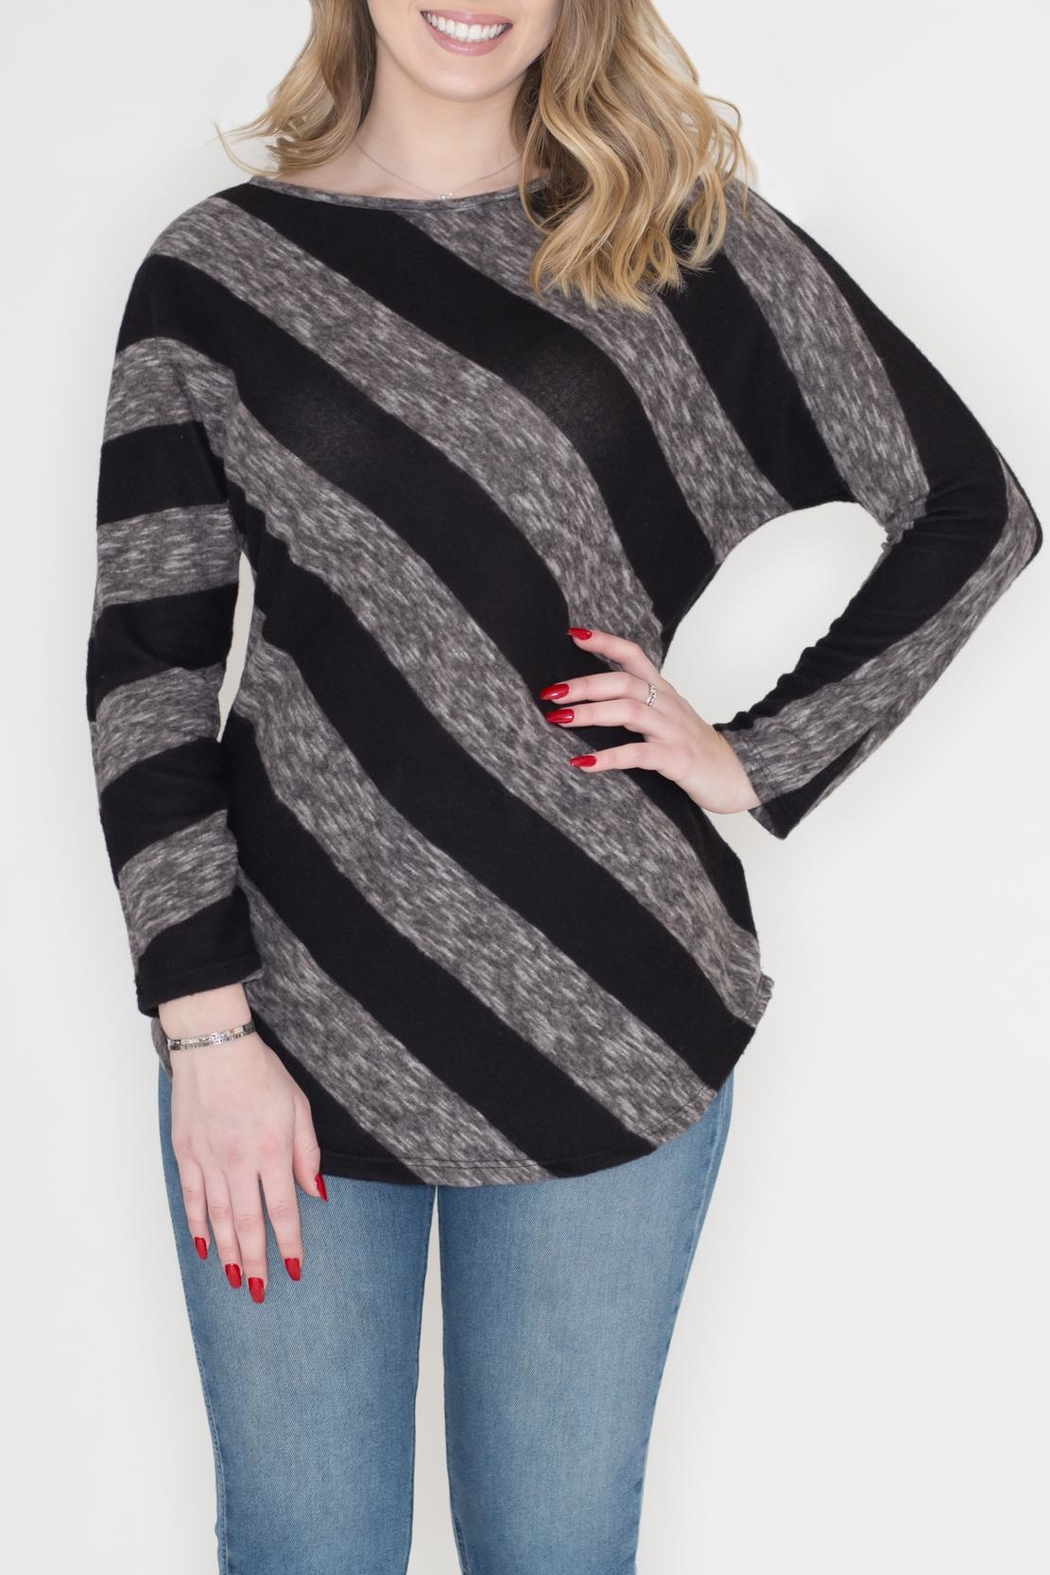 Cherish Diagonal Striped Top - Main Image